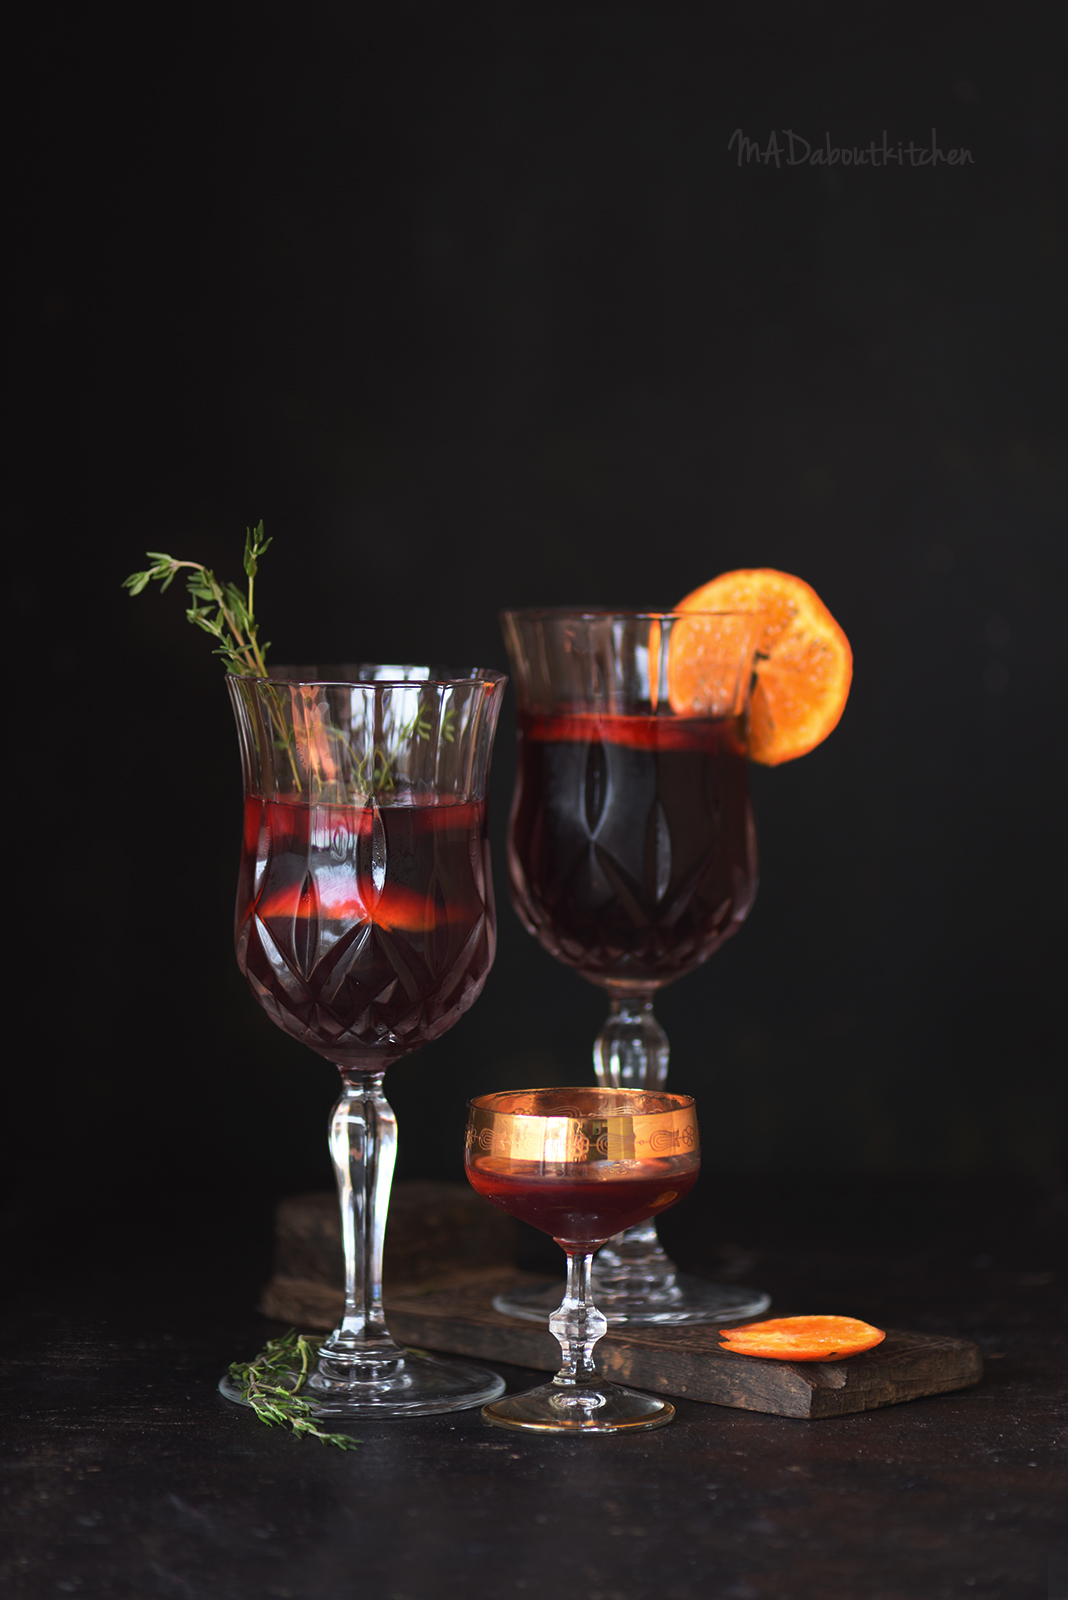 Red Wine Sangria is a punch made using Wine, Chopped fruits, Fruit juice and Alcohol and few other flavours. Here is a recipe for beginners like me who are learning how to make Sangria. Food Photography and Food Styling by Madhuri Aggarwal.